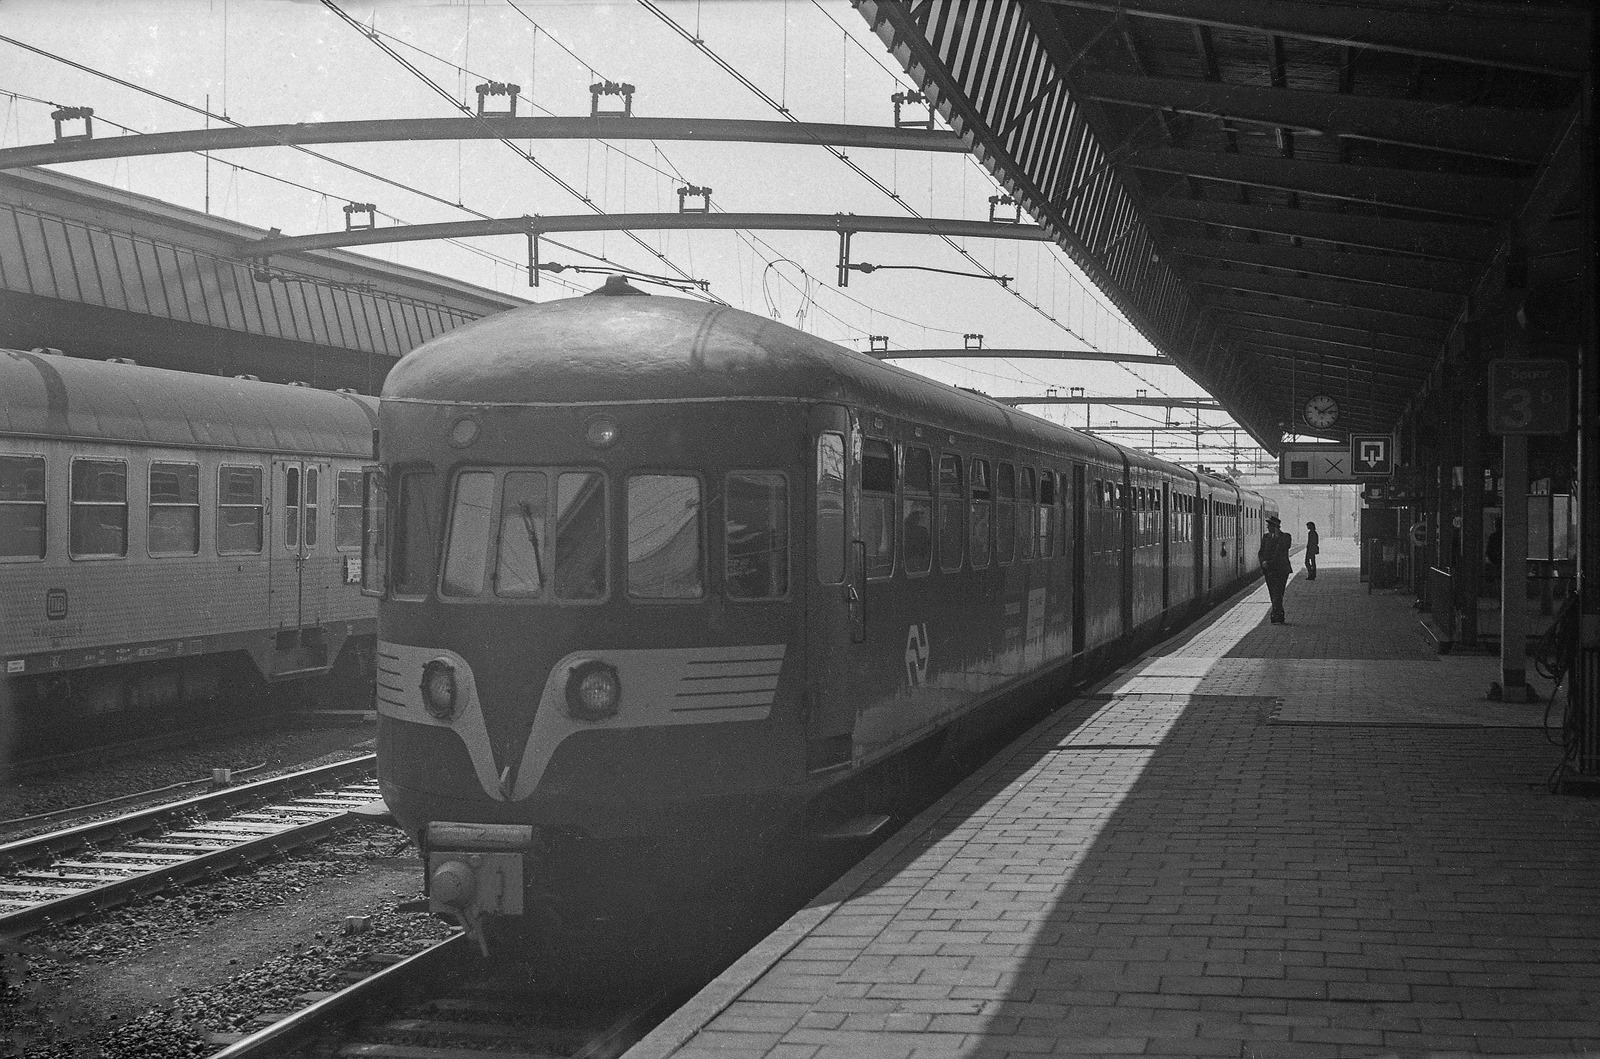 165 NS DE 5 1972 in Venlo